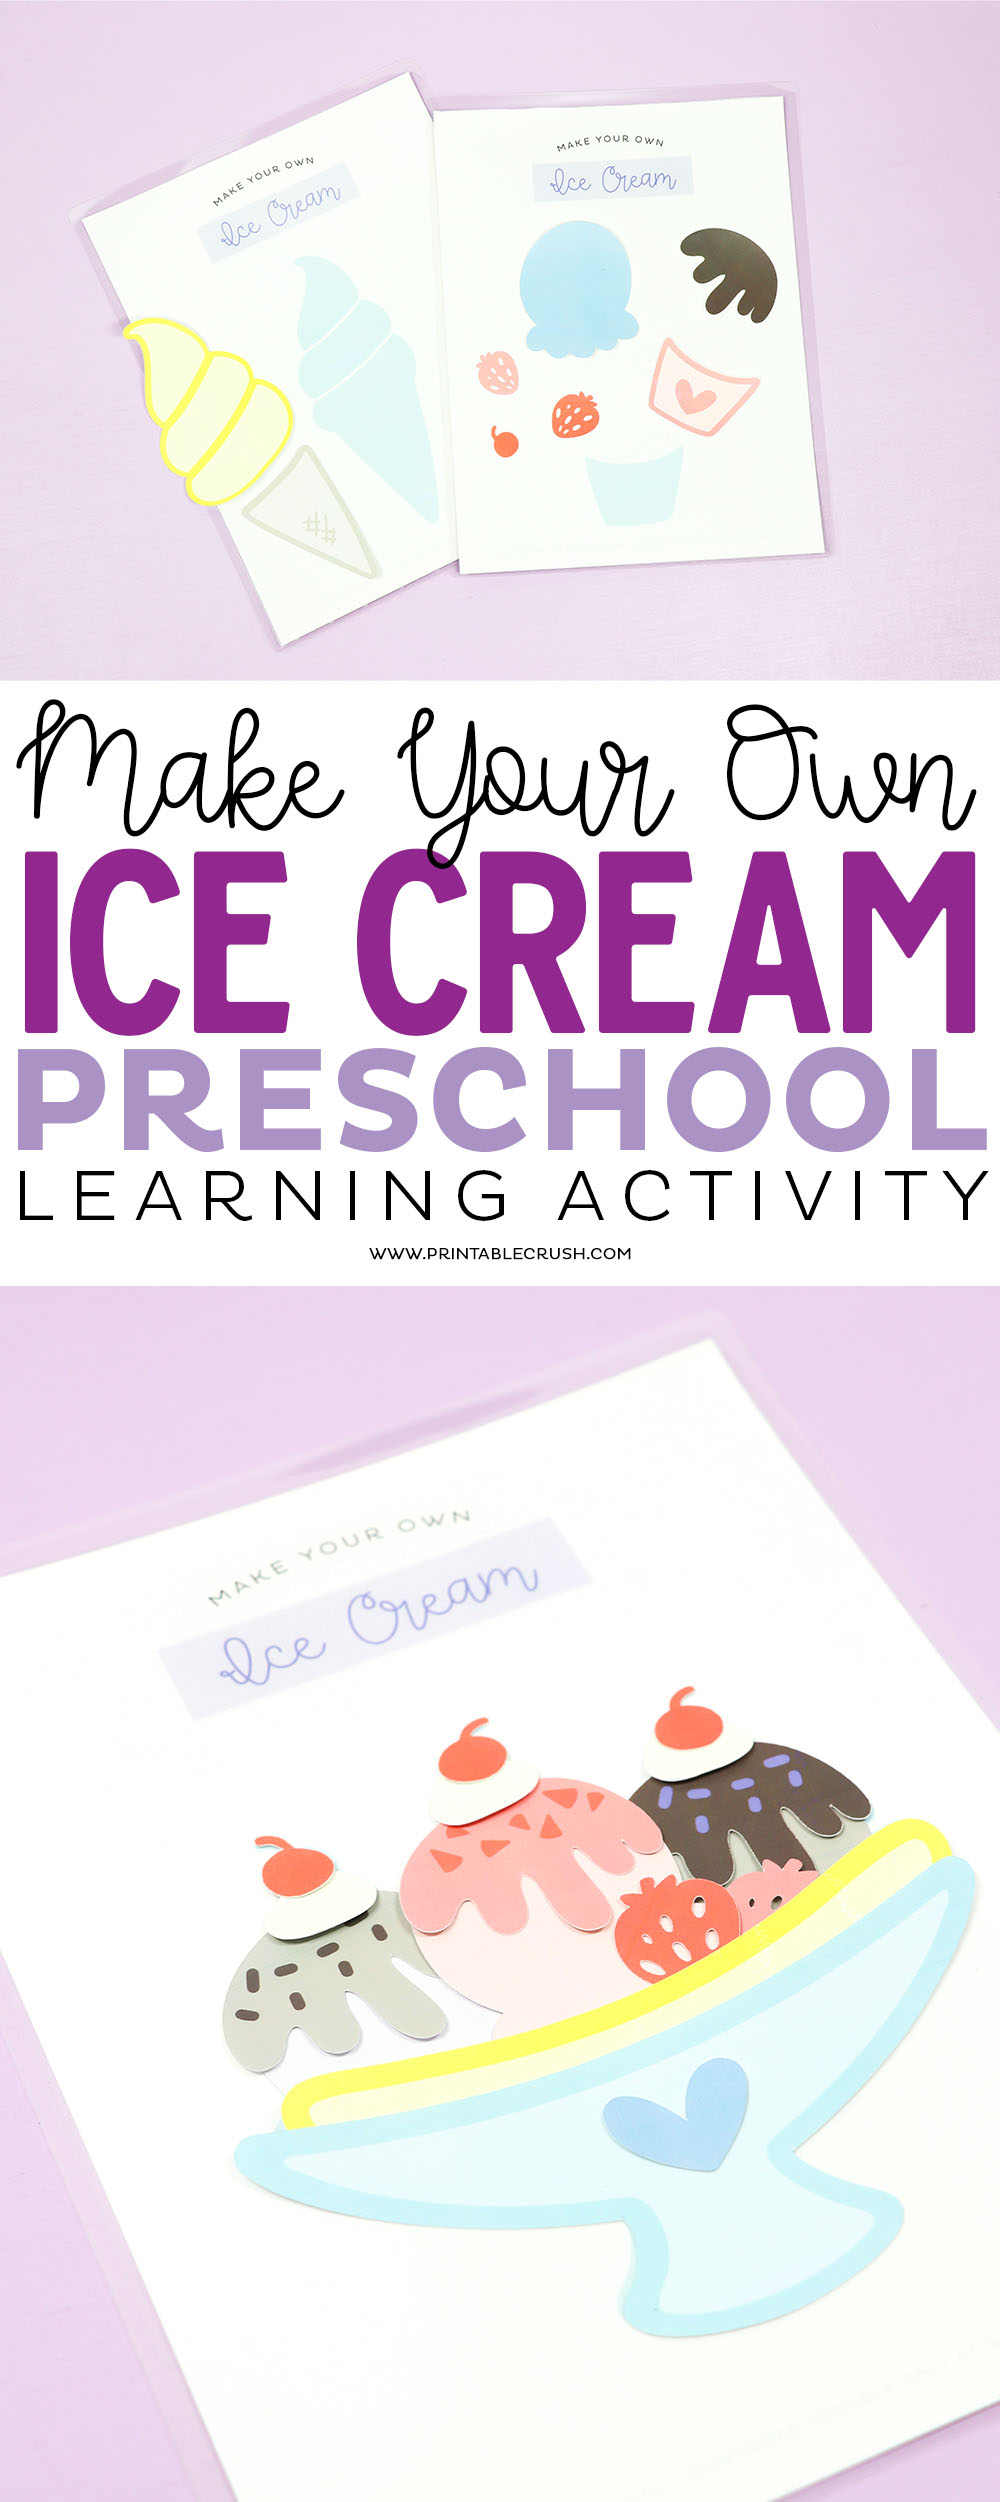 This Make Your Own Ice Cream Preschool Learning Activity is inexpensive and will keep you child entertained for hours! #preschoolactivity #freeprintable #preschoolprintable via @printablecrush